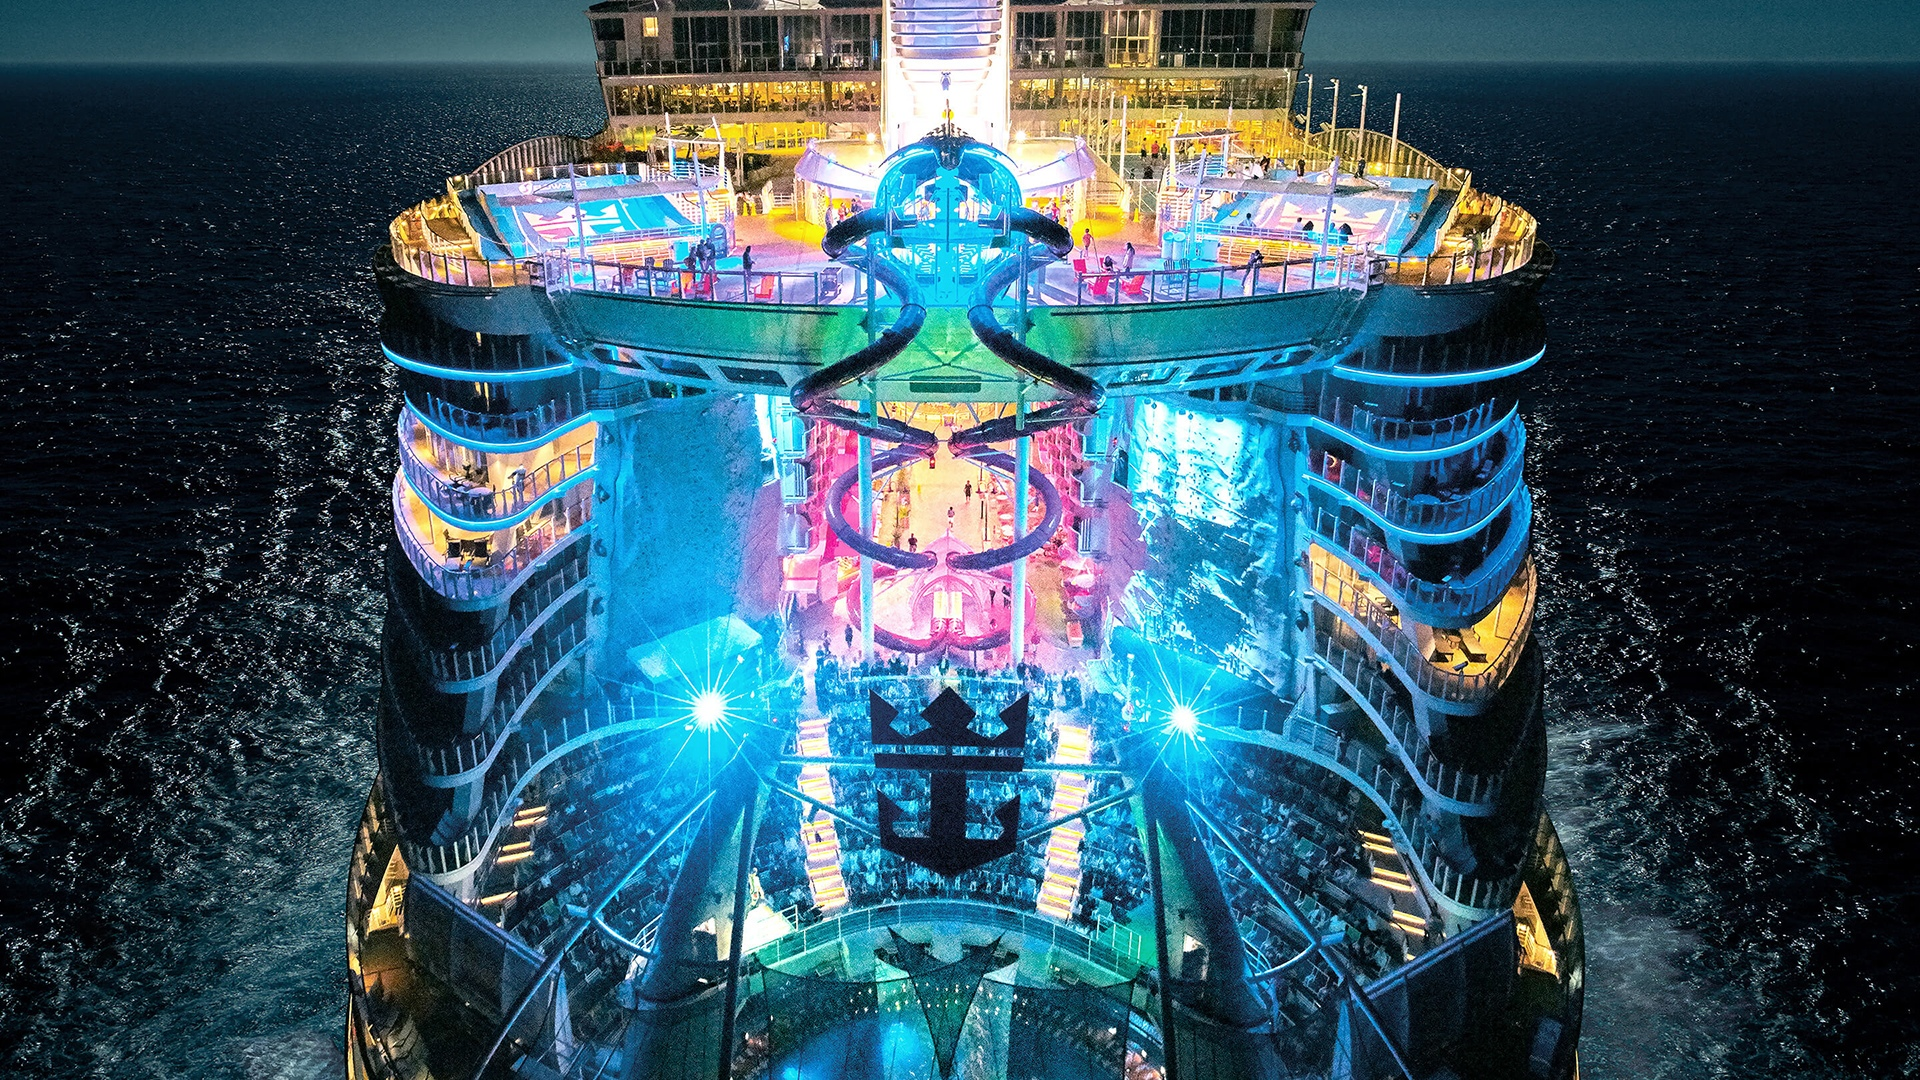 Symphony of the Seas - royalcarribean.com